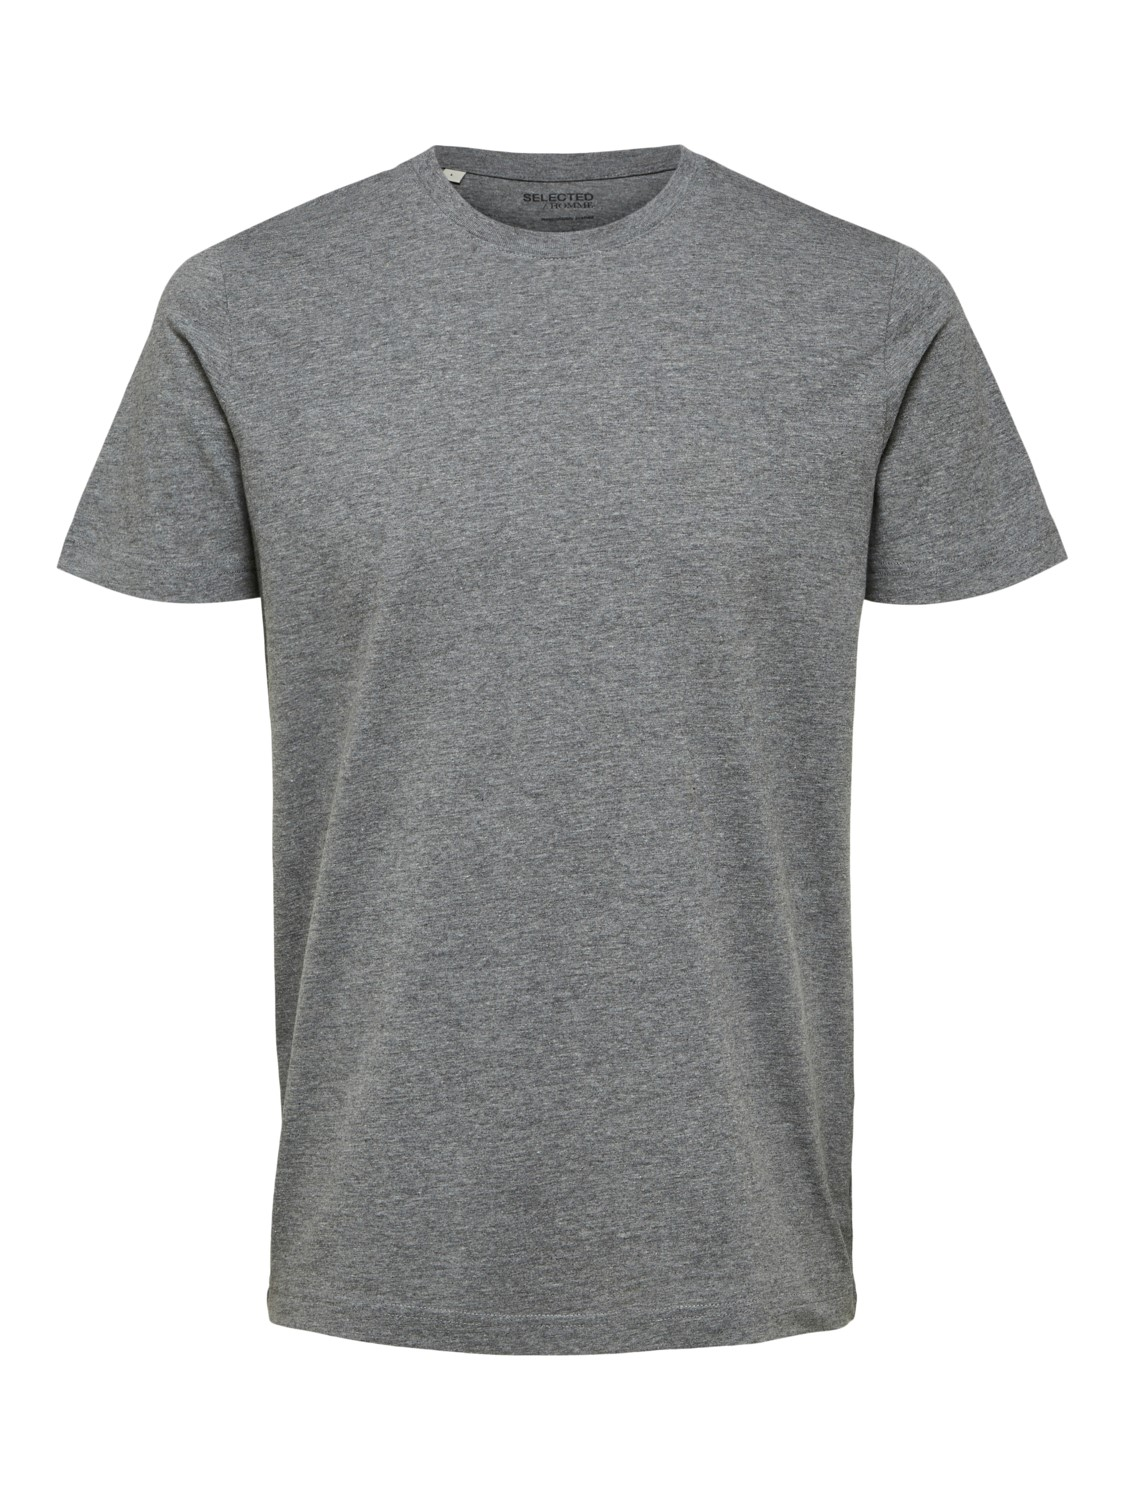 Selected - T-shirt o-neck grey | Gate36 Hobro